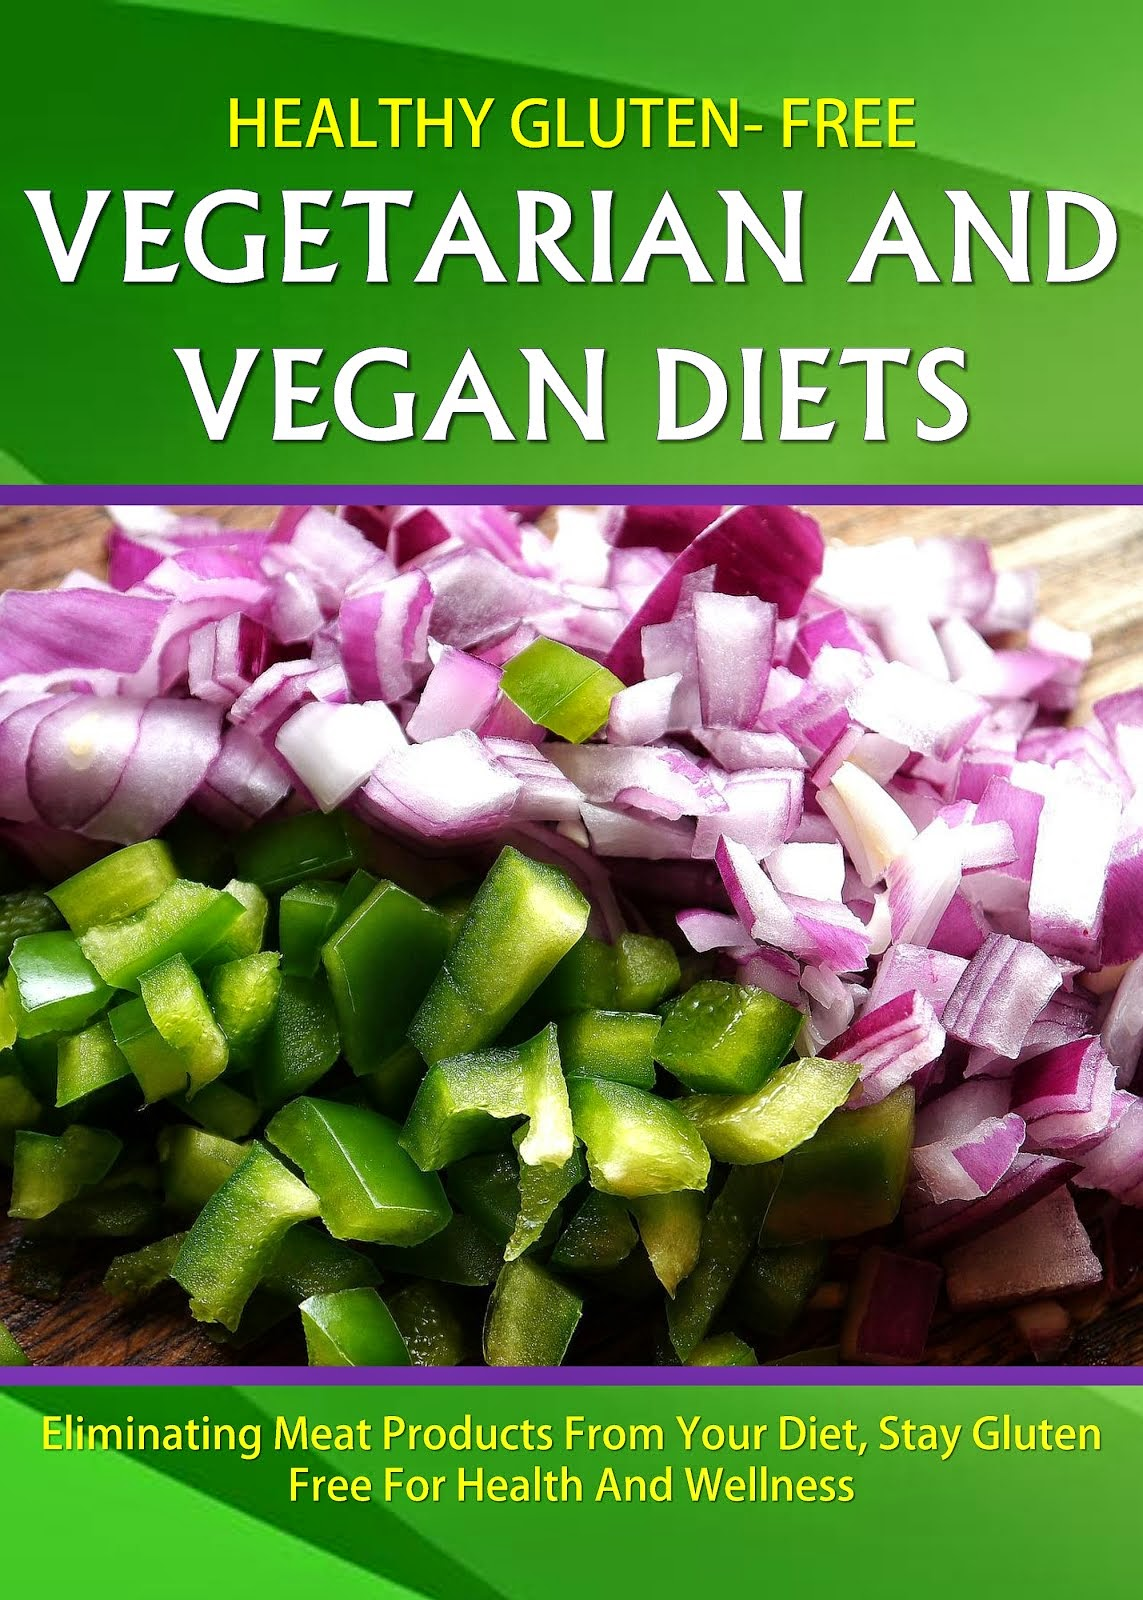 Healthy Gluten Free Vegetarian and Vegan Diet